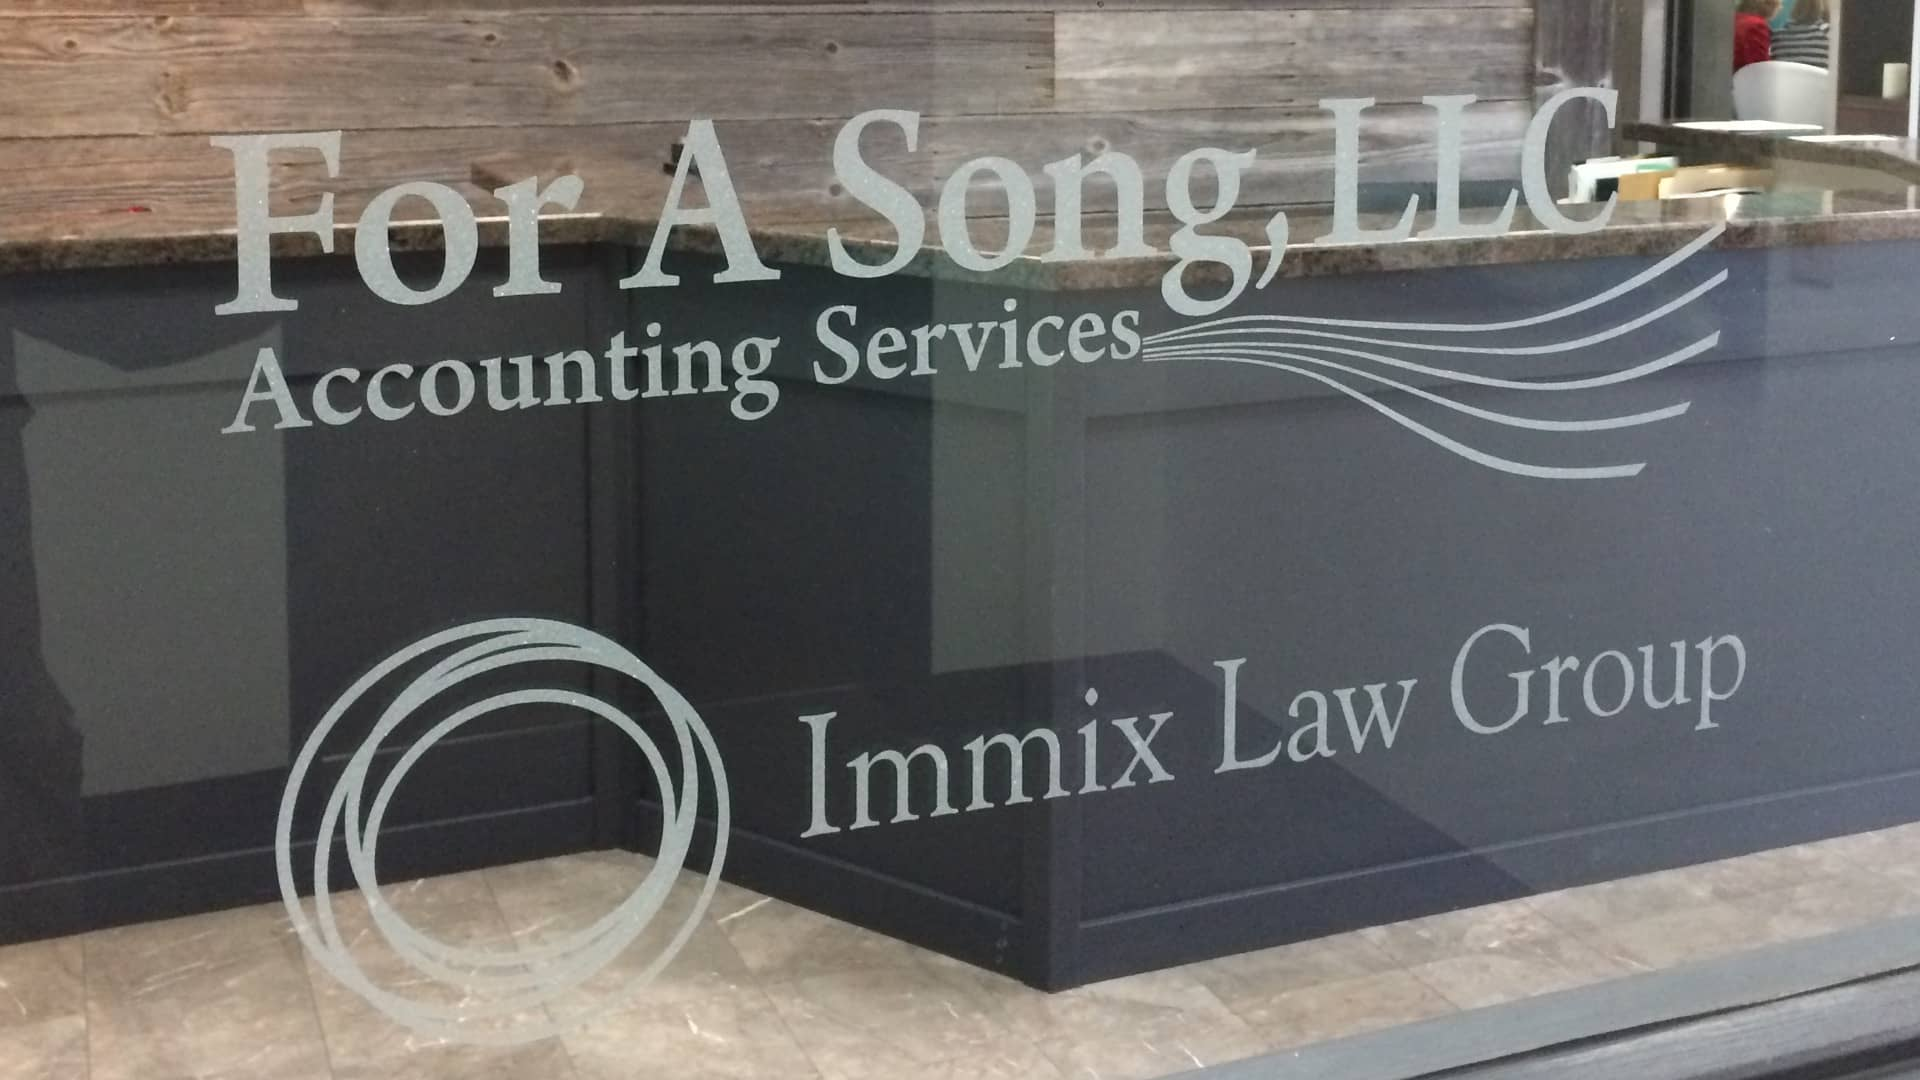 frosted vinyl window sign